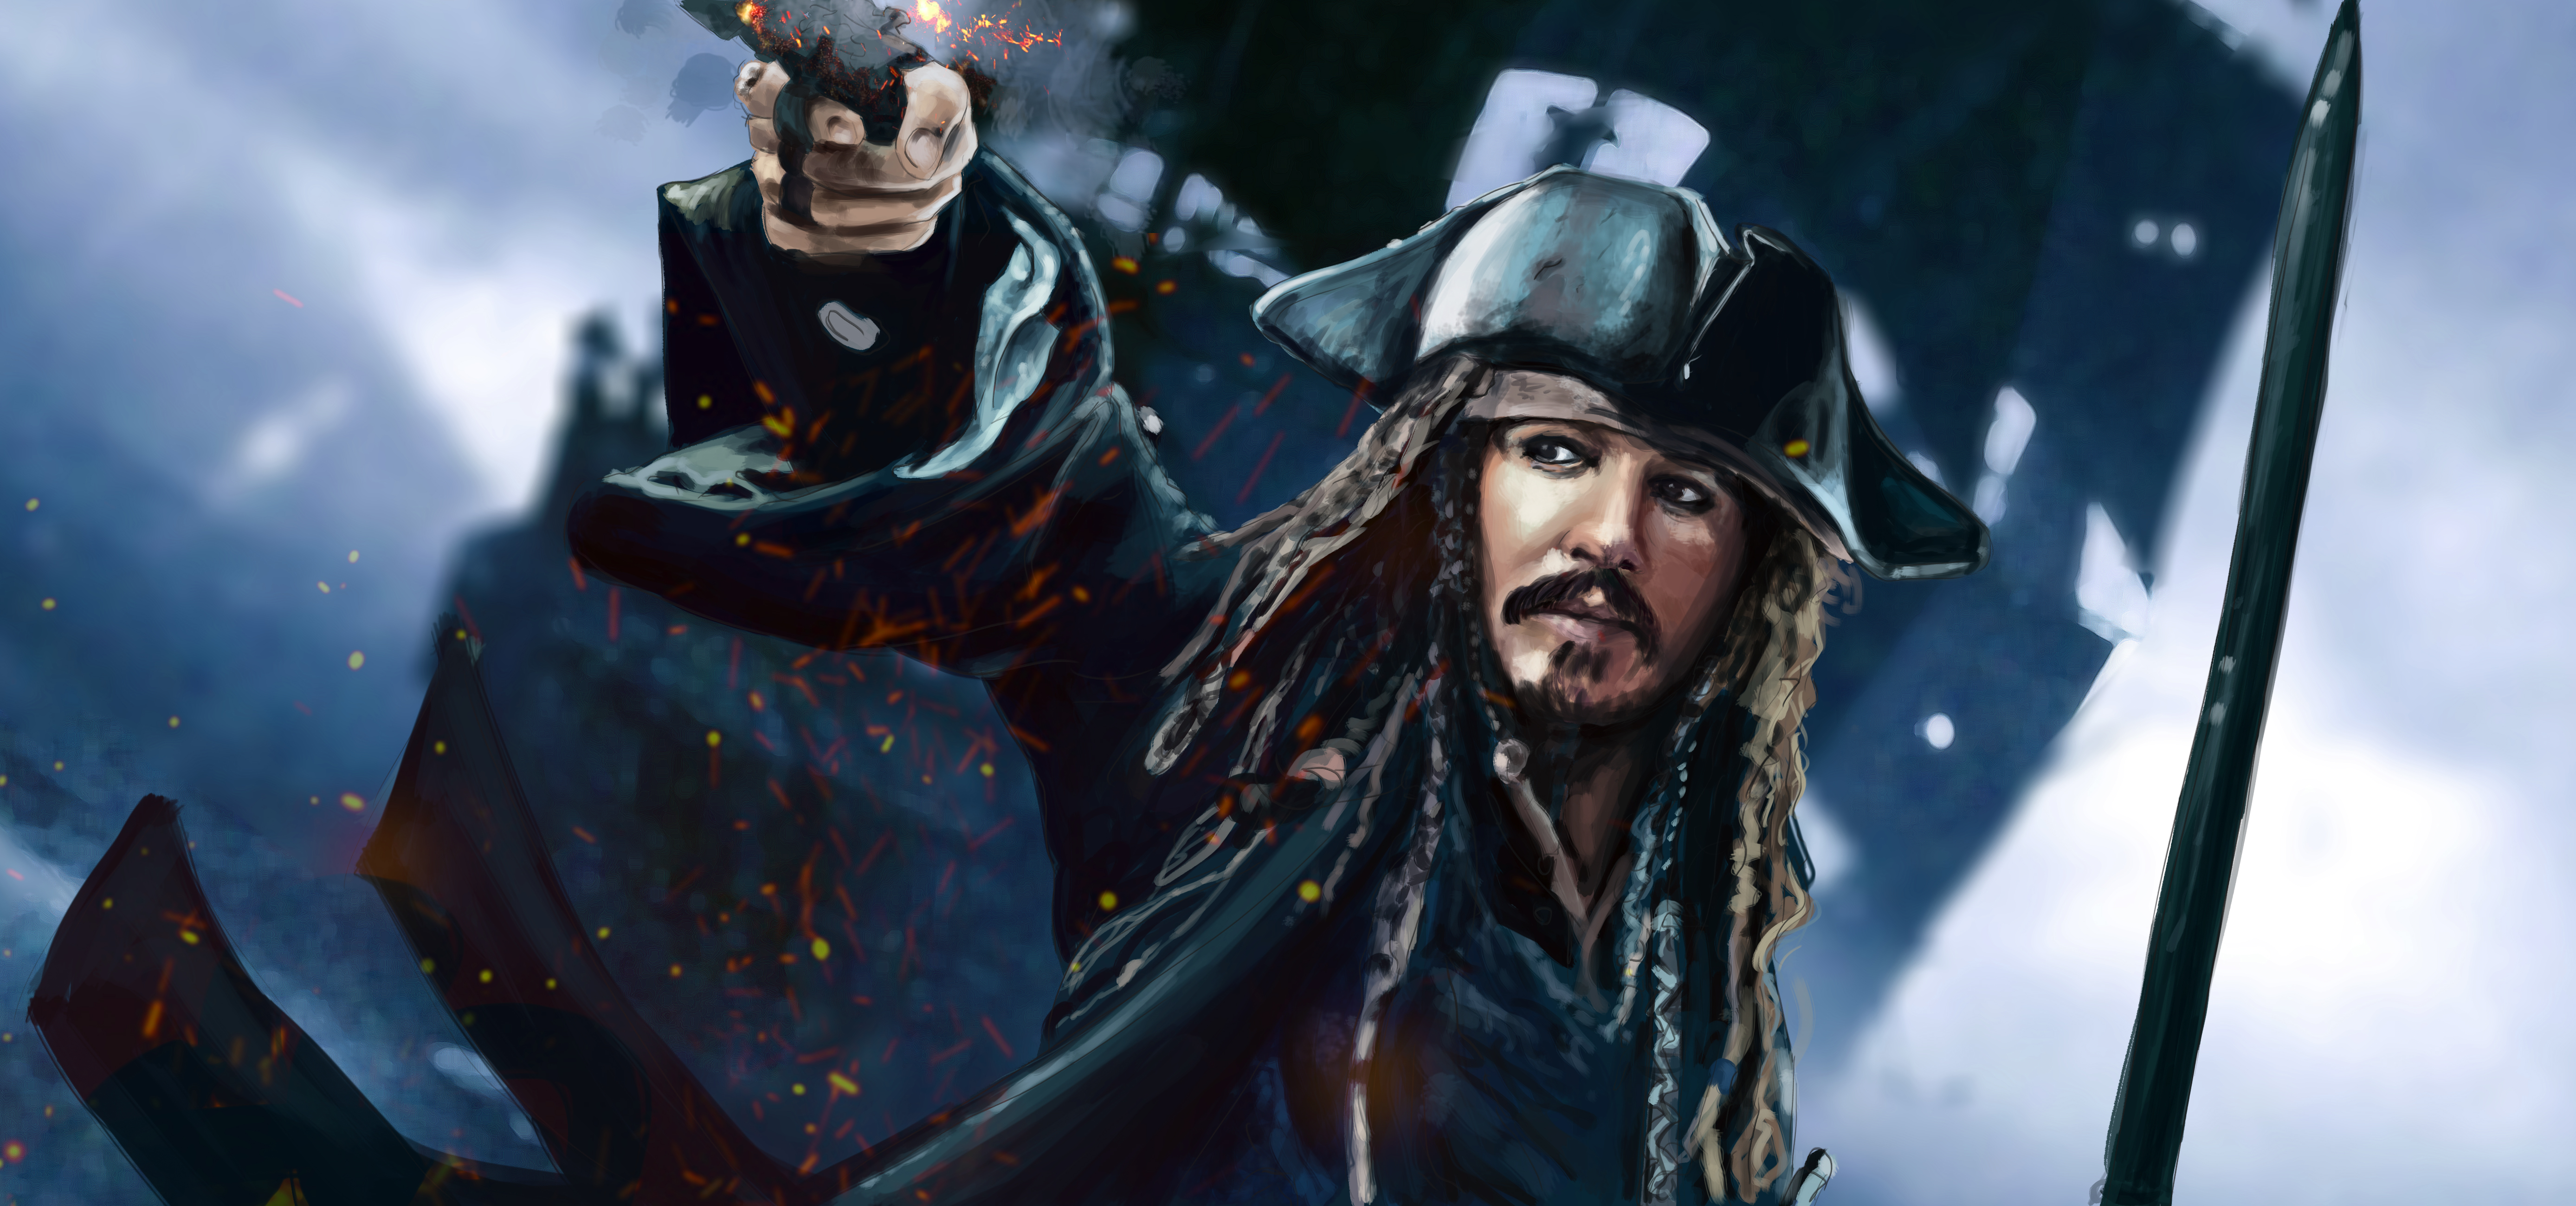 2560x1440 Jack Sparrow 5k Artwork 1440p Resolution Hd 4k Wallpapers Images Backgrounds Photos And Pictures